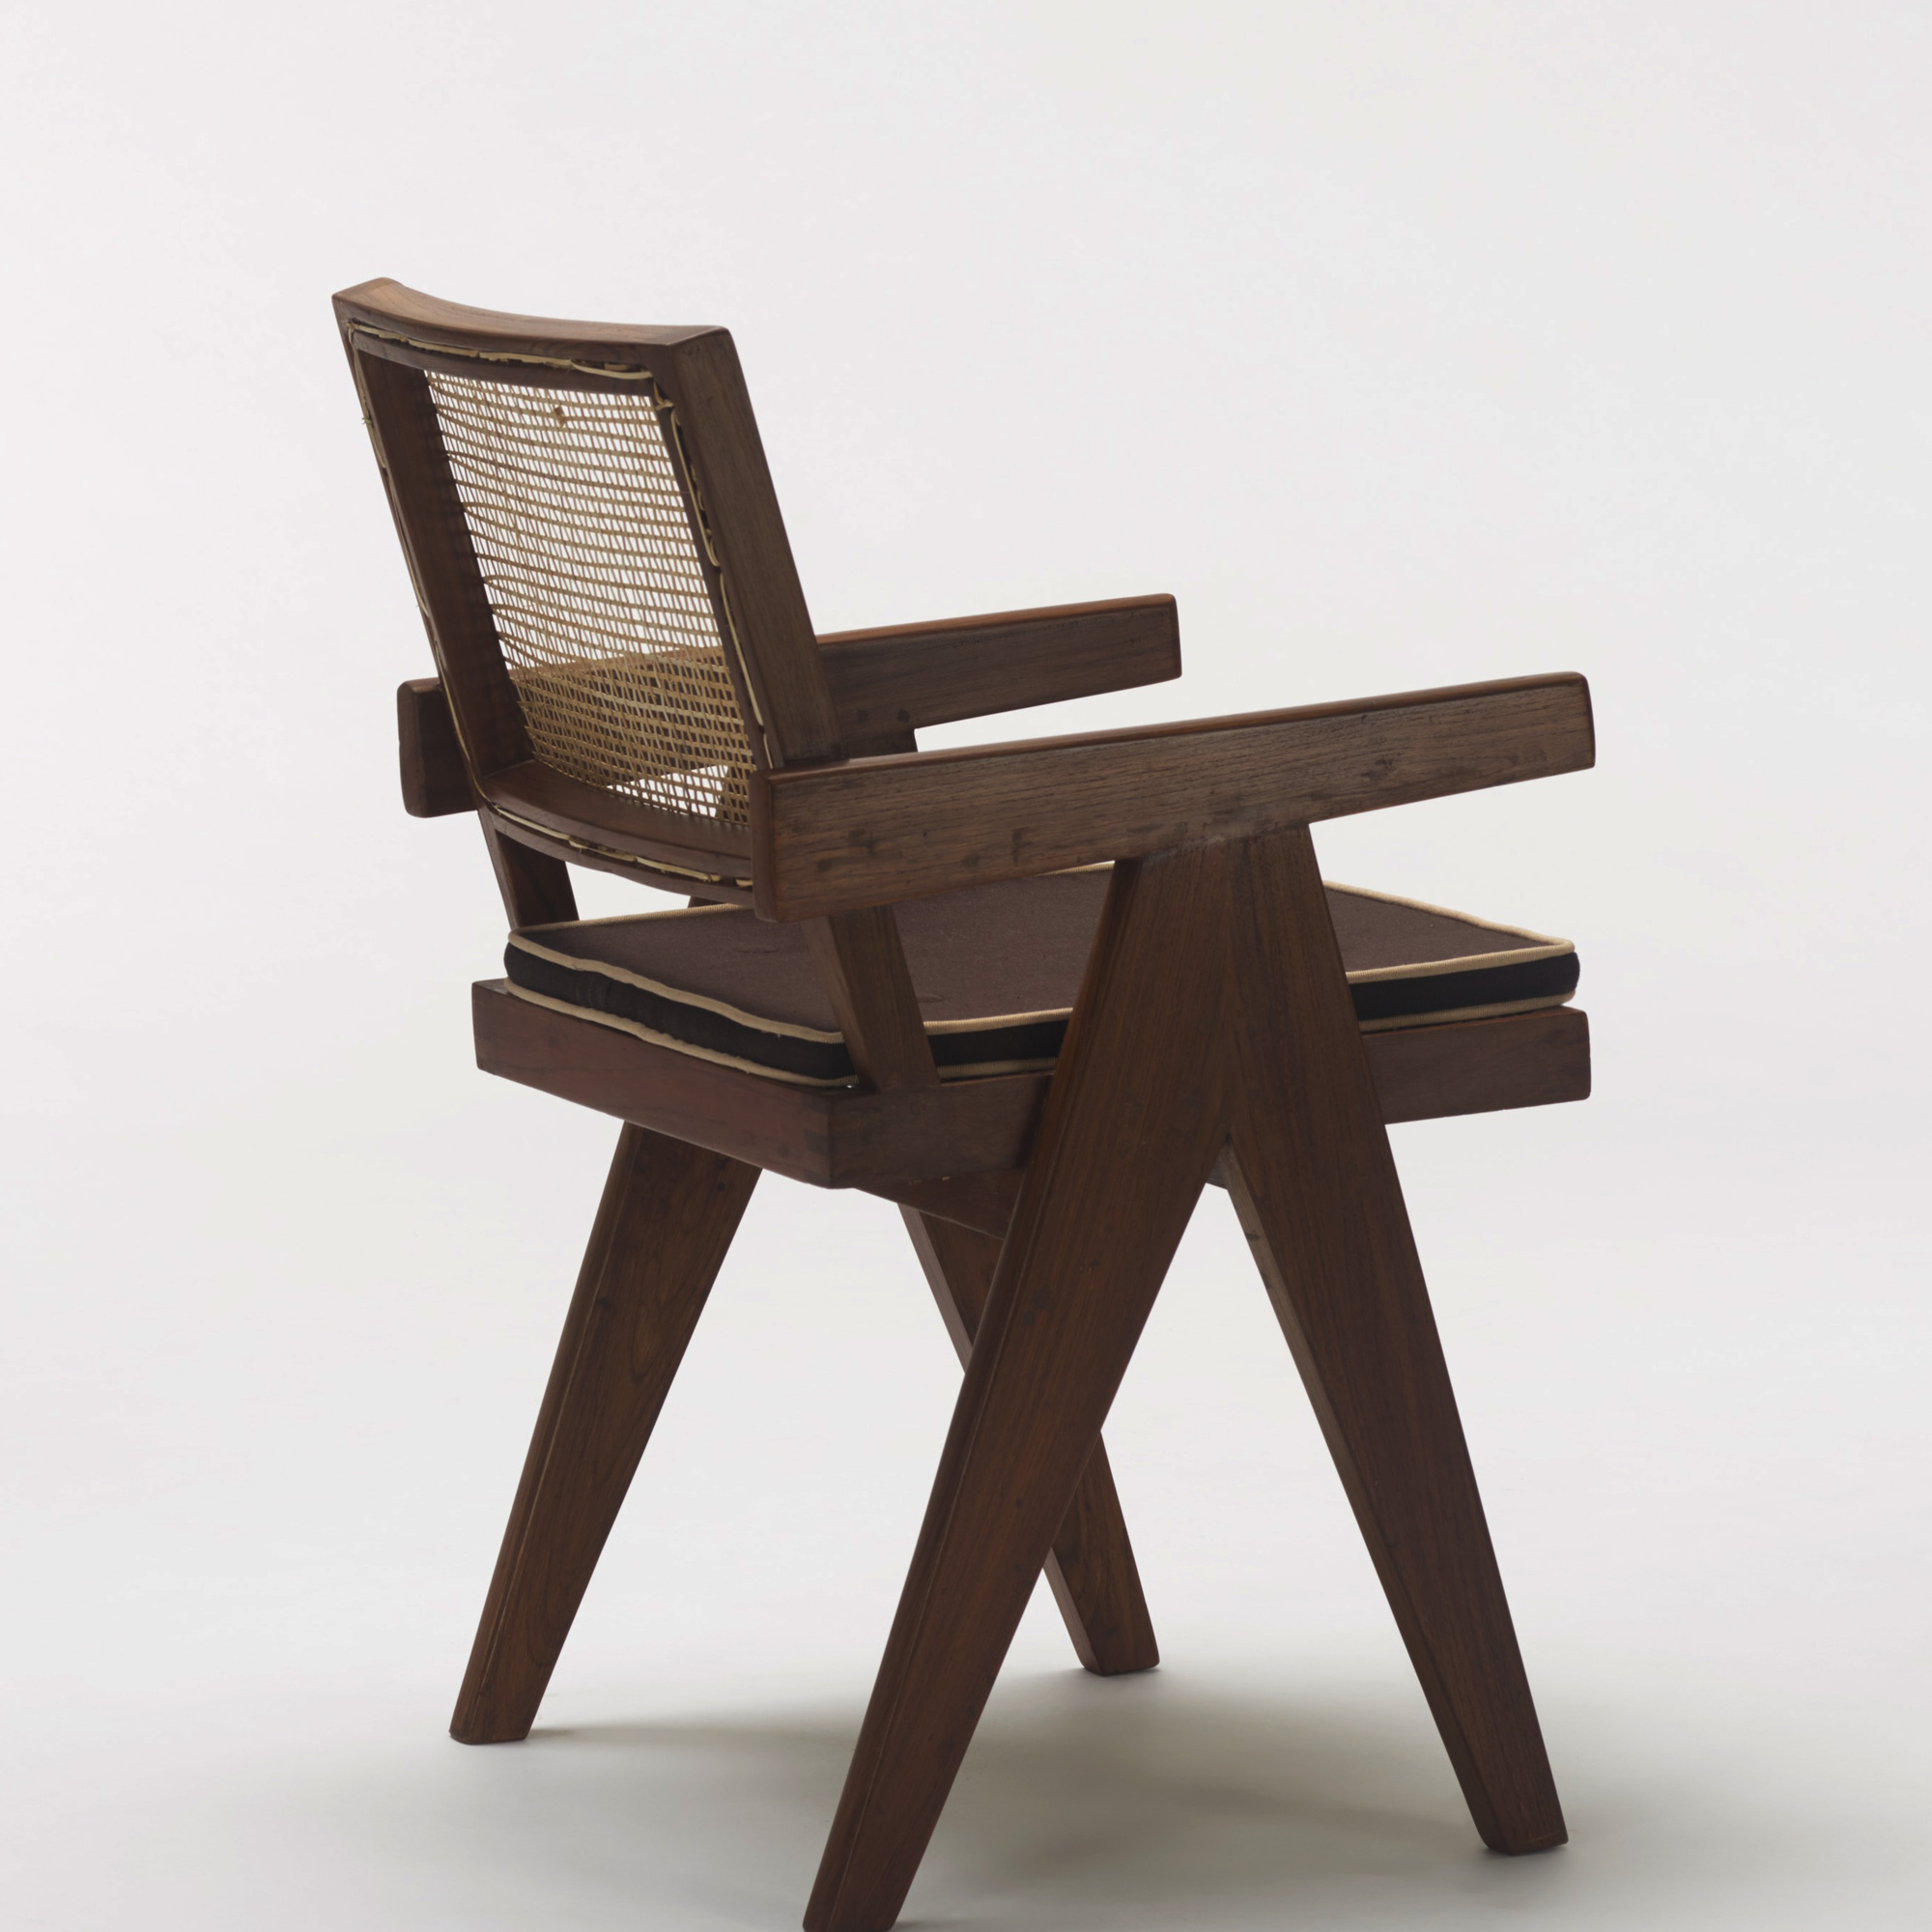 118: Pierre Jeanneret / set of six armchairs from Chandigarh (3 of 3)